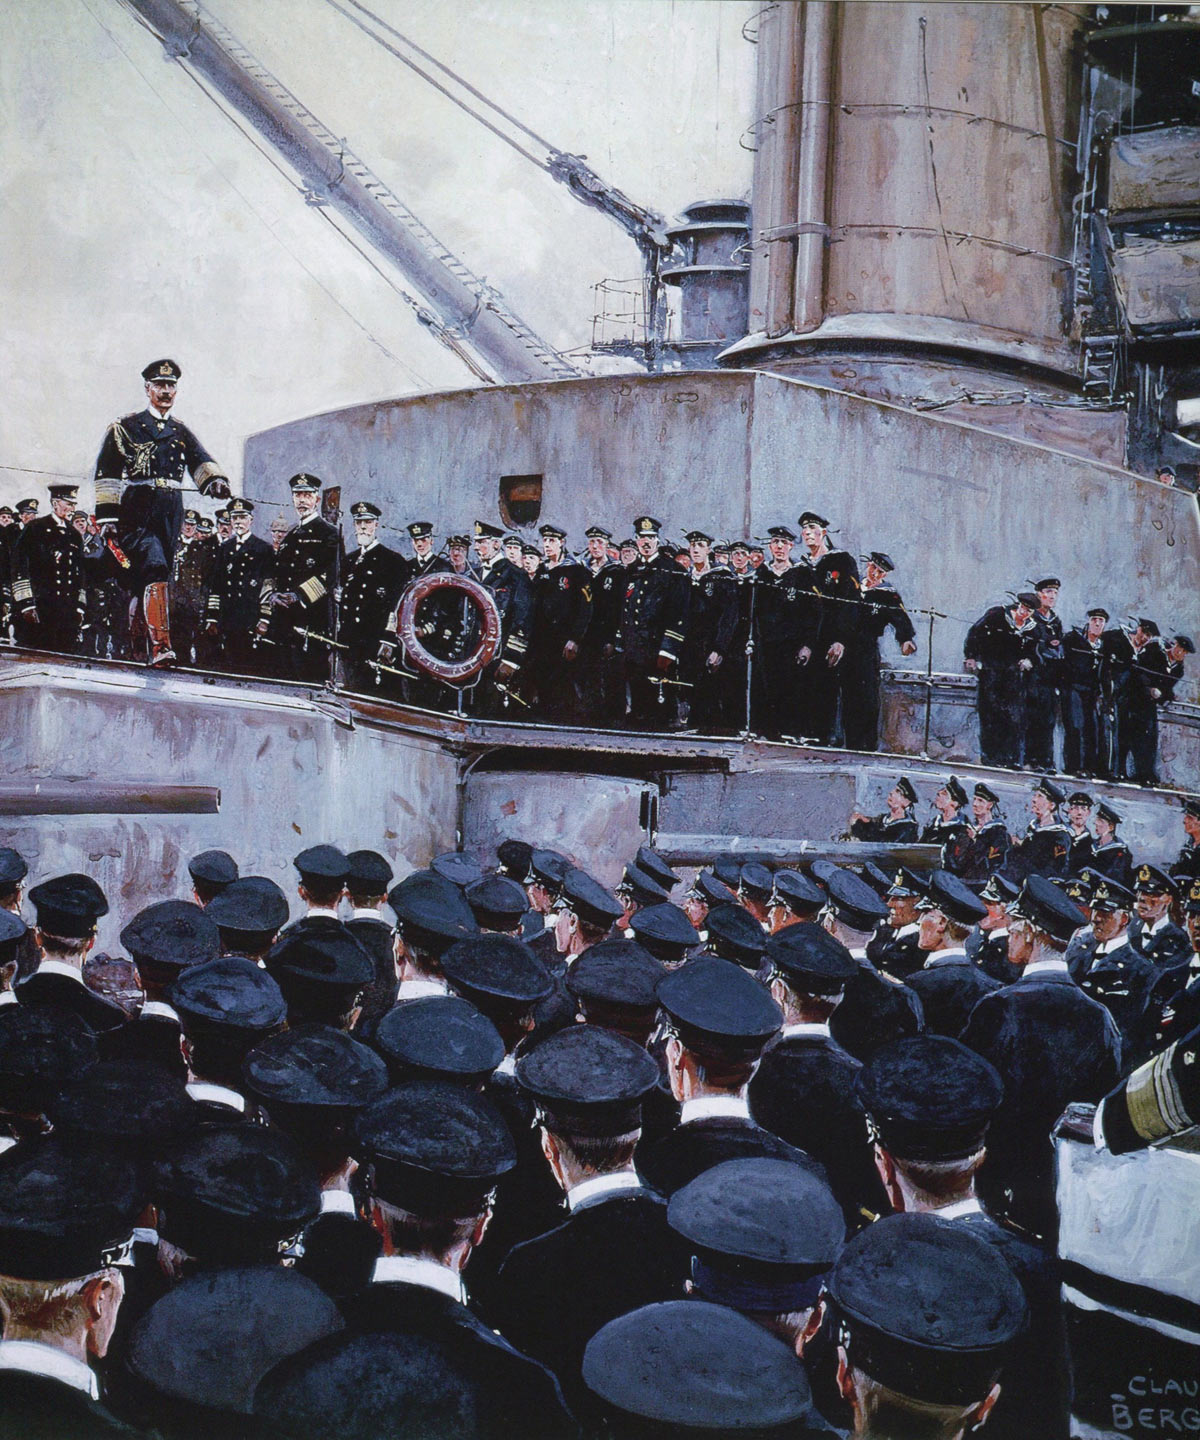 Kaiser Wilhelm II addressing officers of his High Seas Fleet after the Battle of Jutland: picture by Claus Bergen